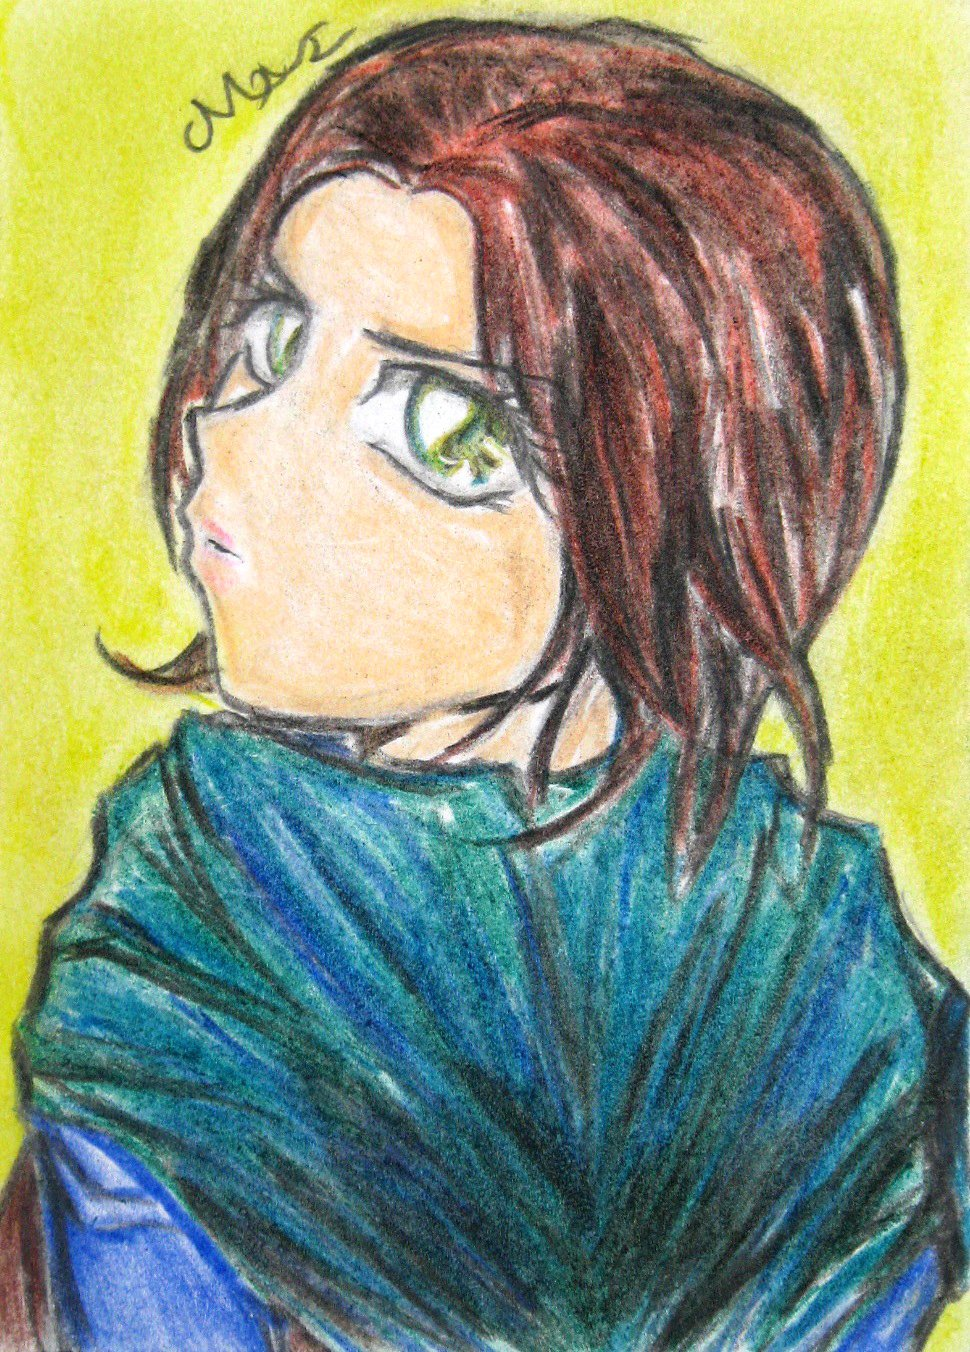 Star Wars Rogue One Jyn Erso Japanese Anime Art Original Sketch Card Drawing ACEO PSC 1/1 by Maia